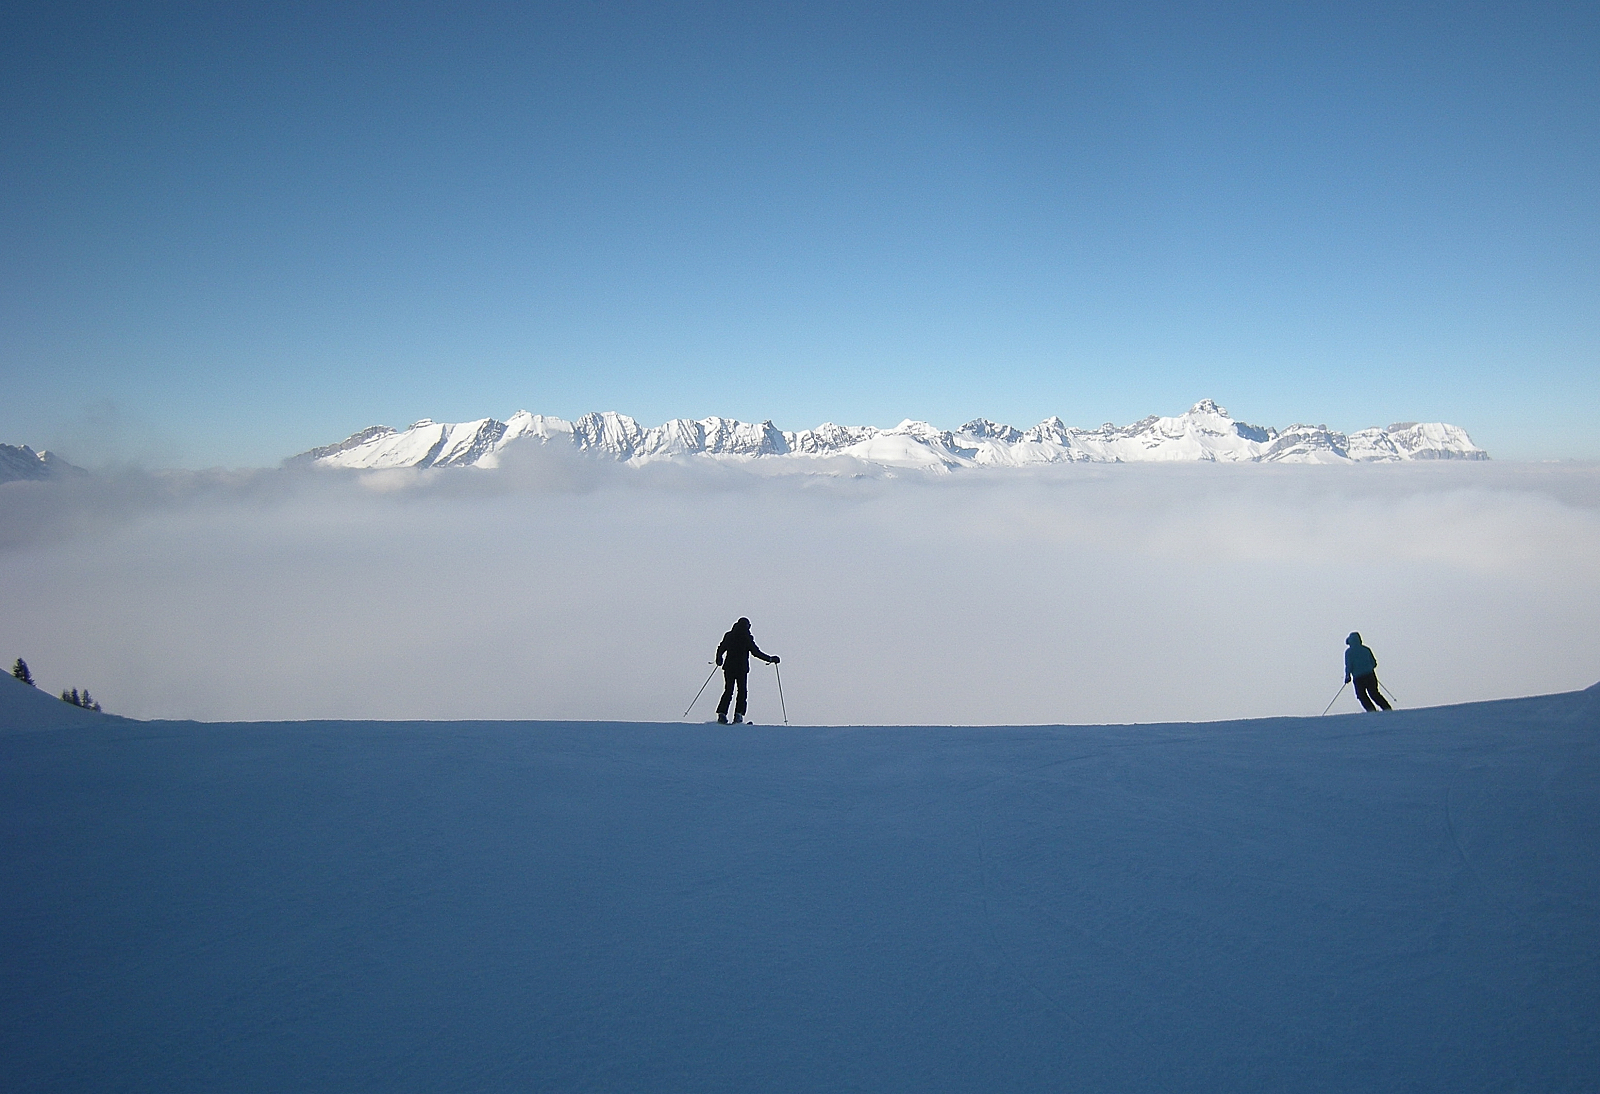 It's going to be cold in the inversion!, Saint Gervais